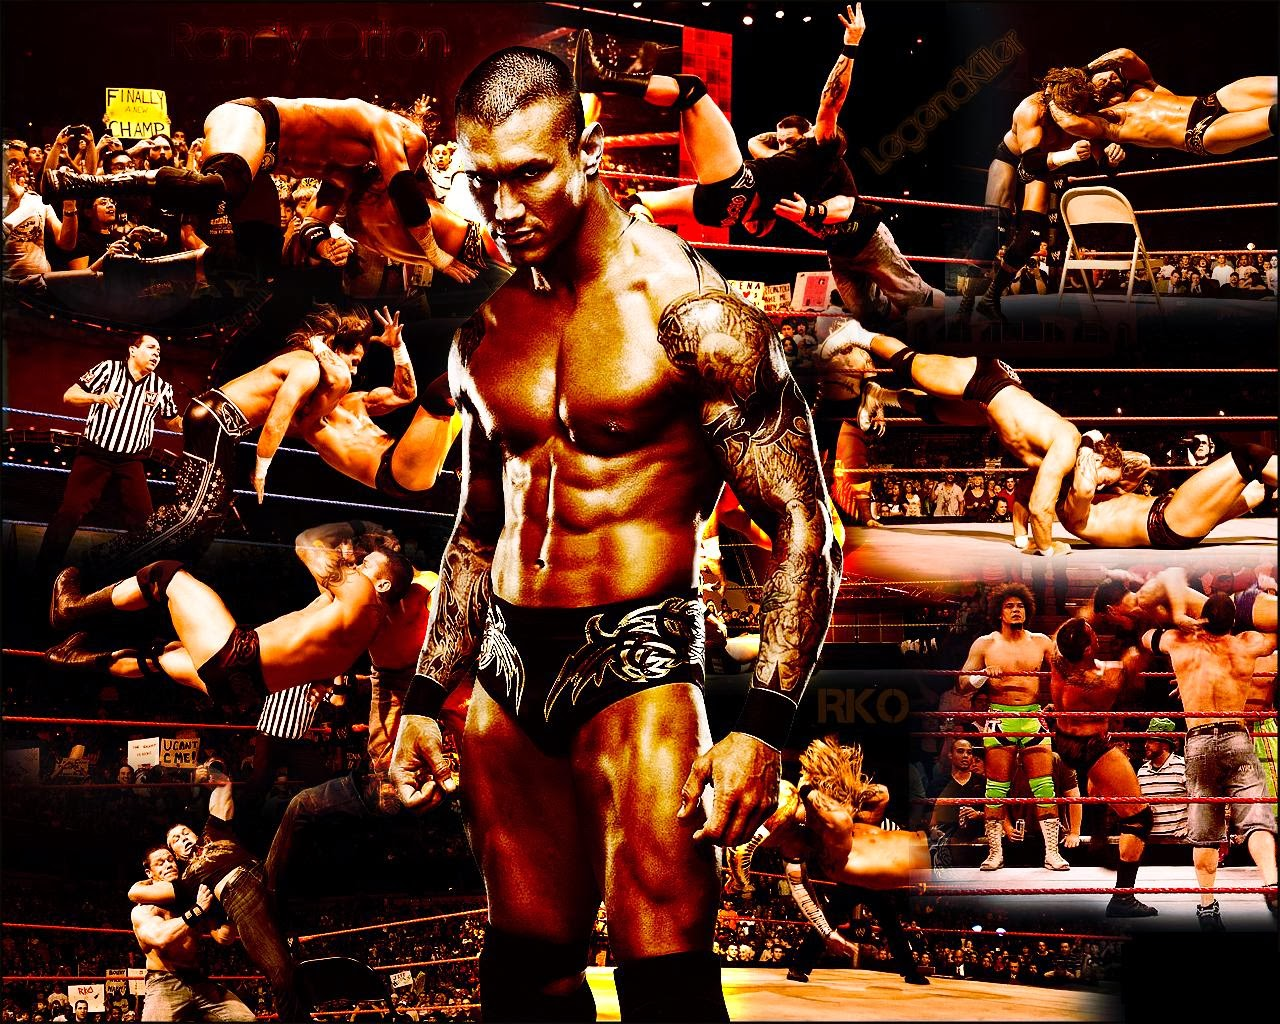 WWE Randy Orton Wallpapers 2015 1280x1024